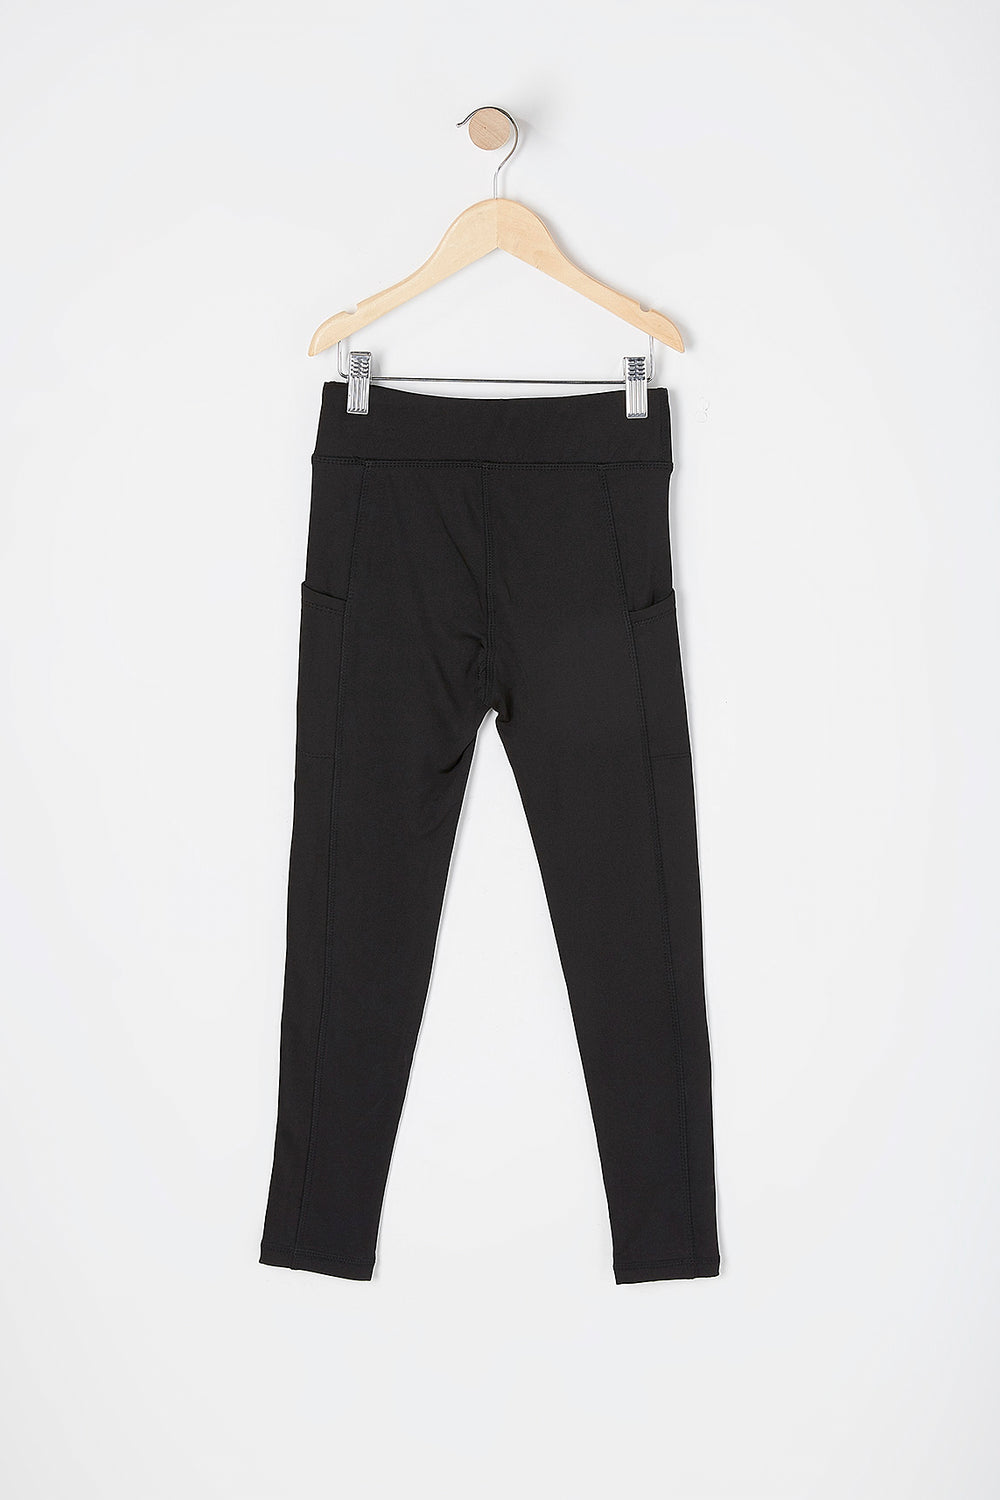 Girls Fleece Lined Pocket Active Legging Black